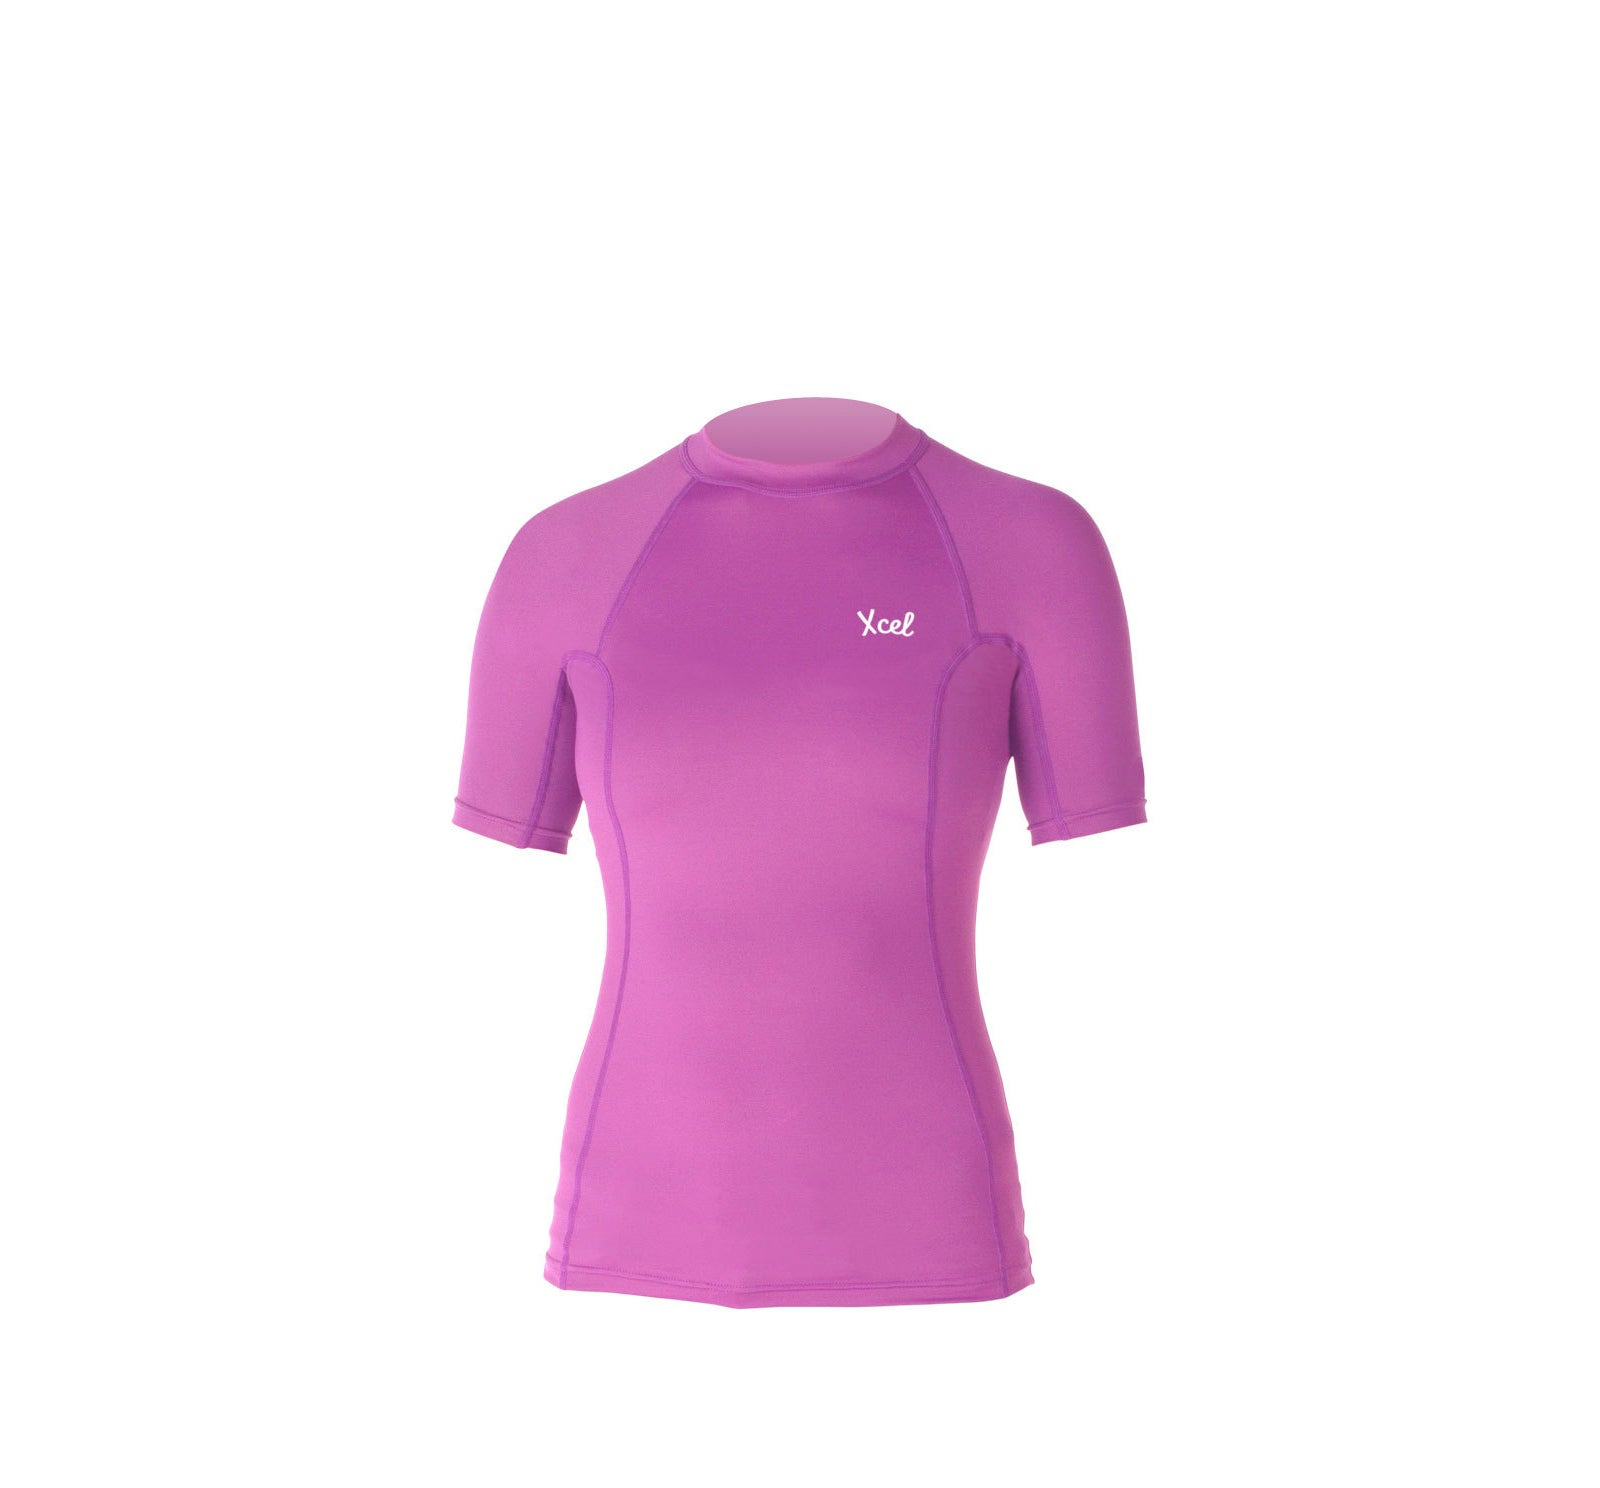 Xcel Marsha Youth Girl's S/S Rashguard